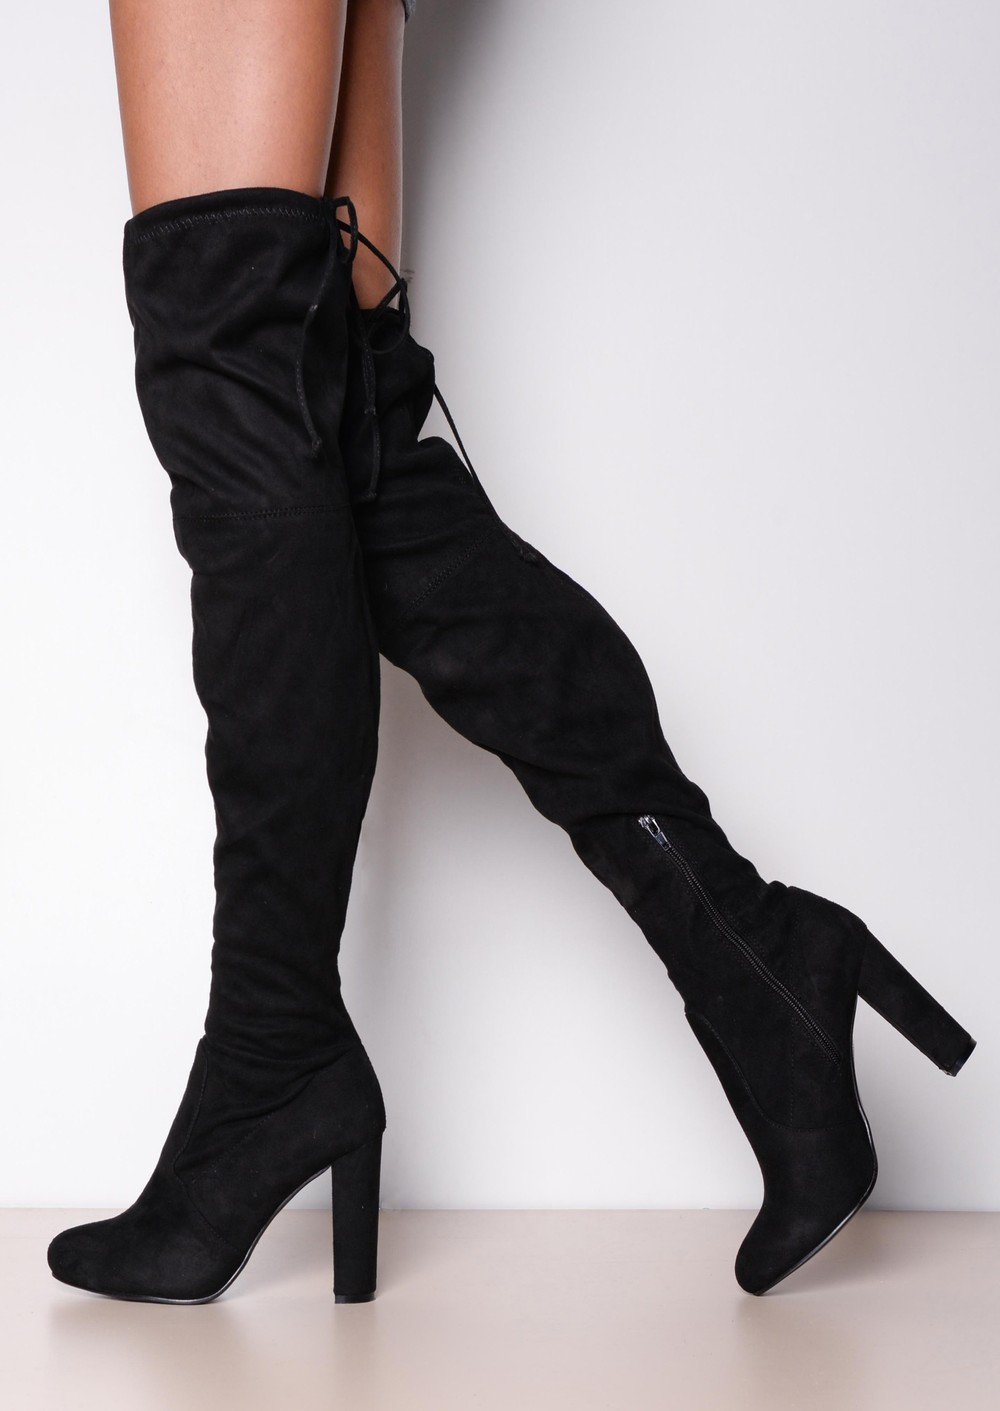 Thigh High Boots Fashion Blog